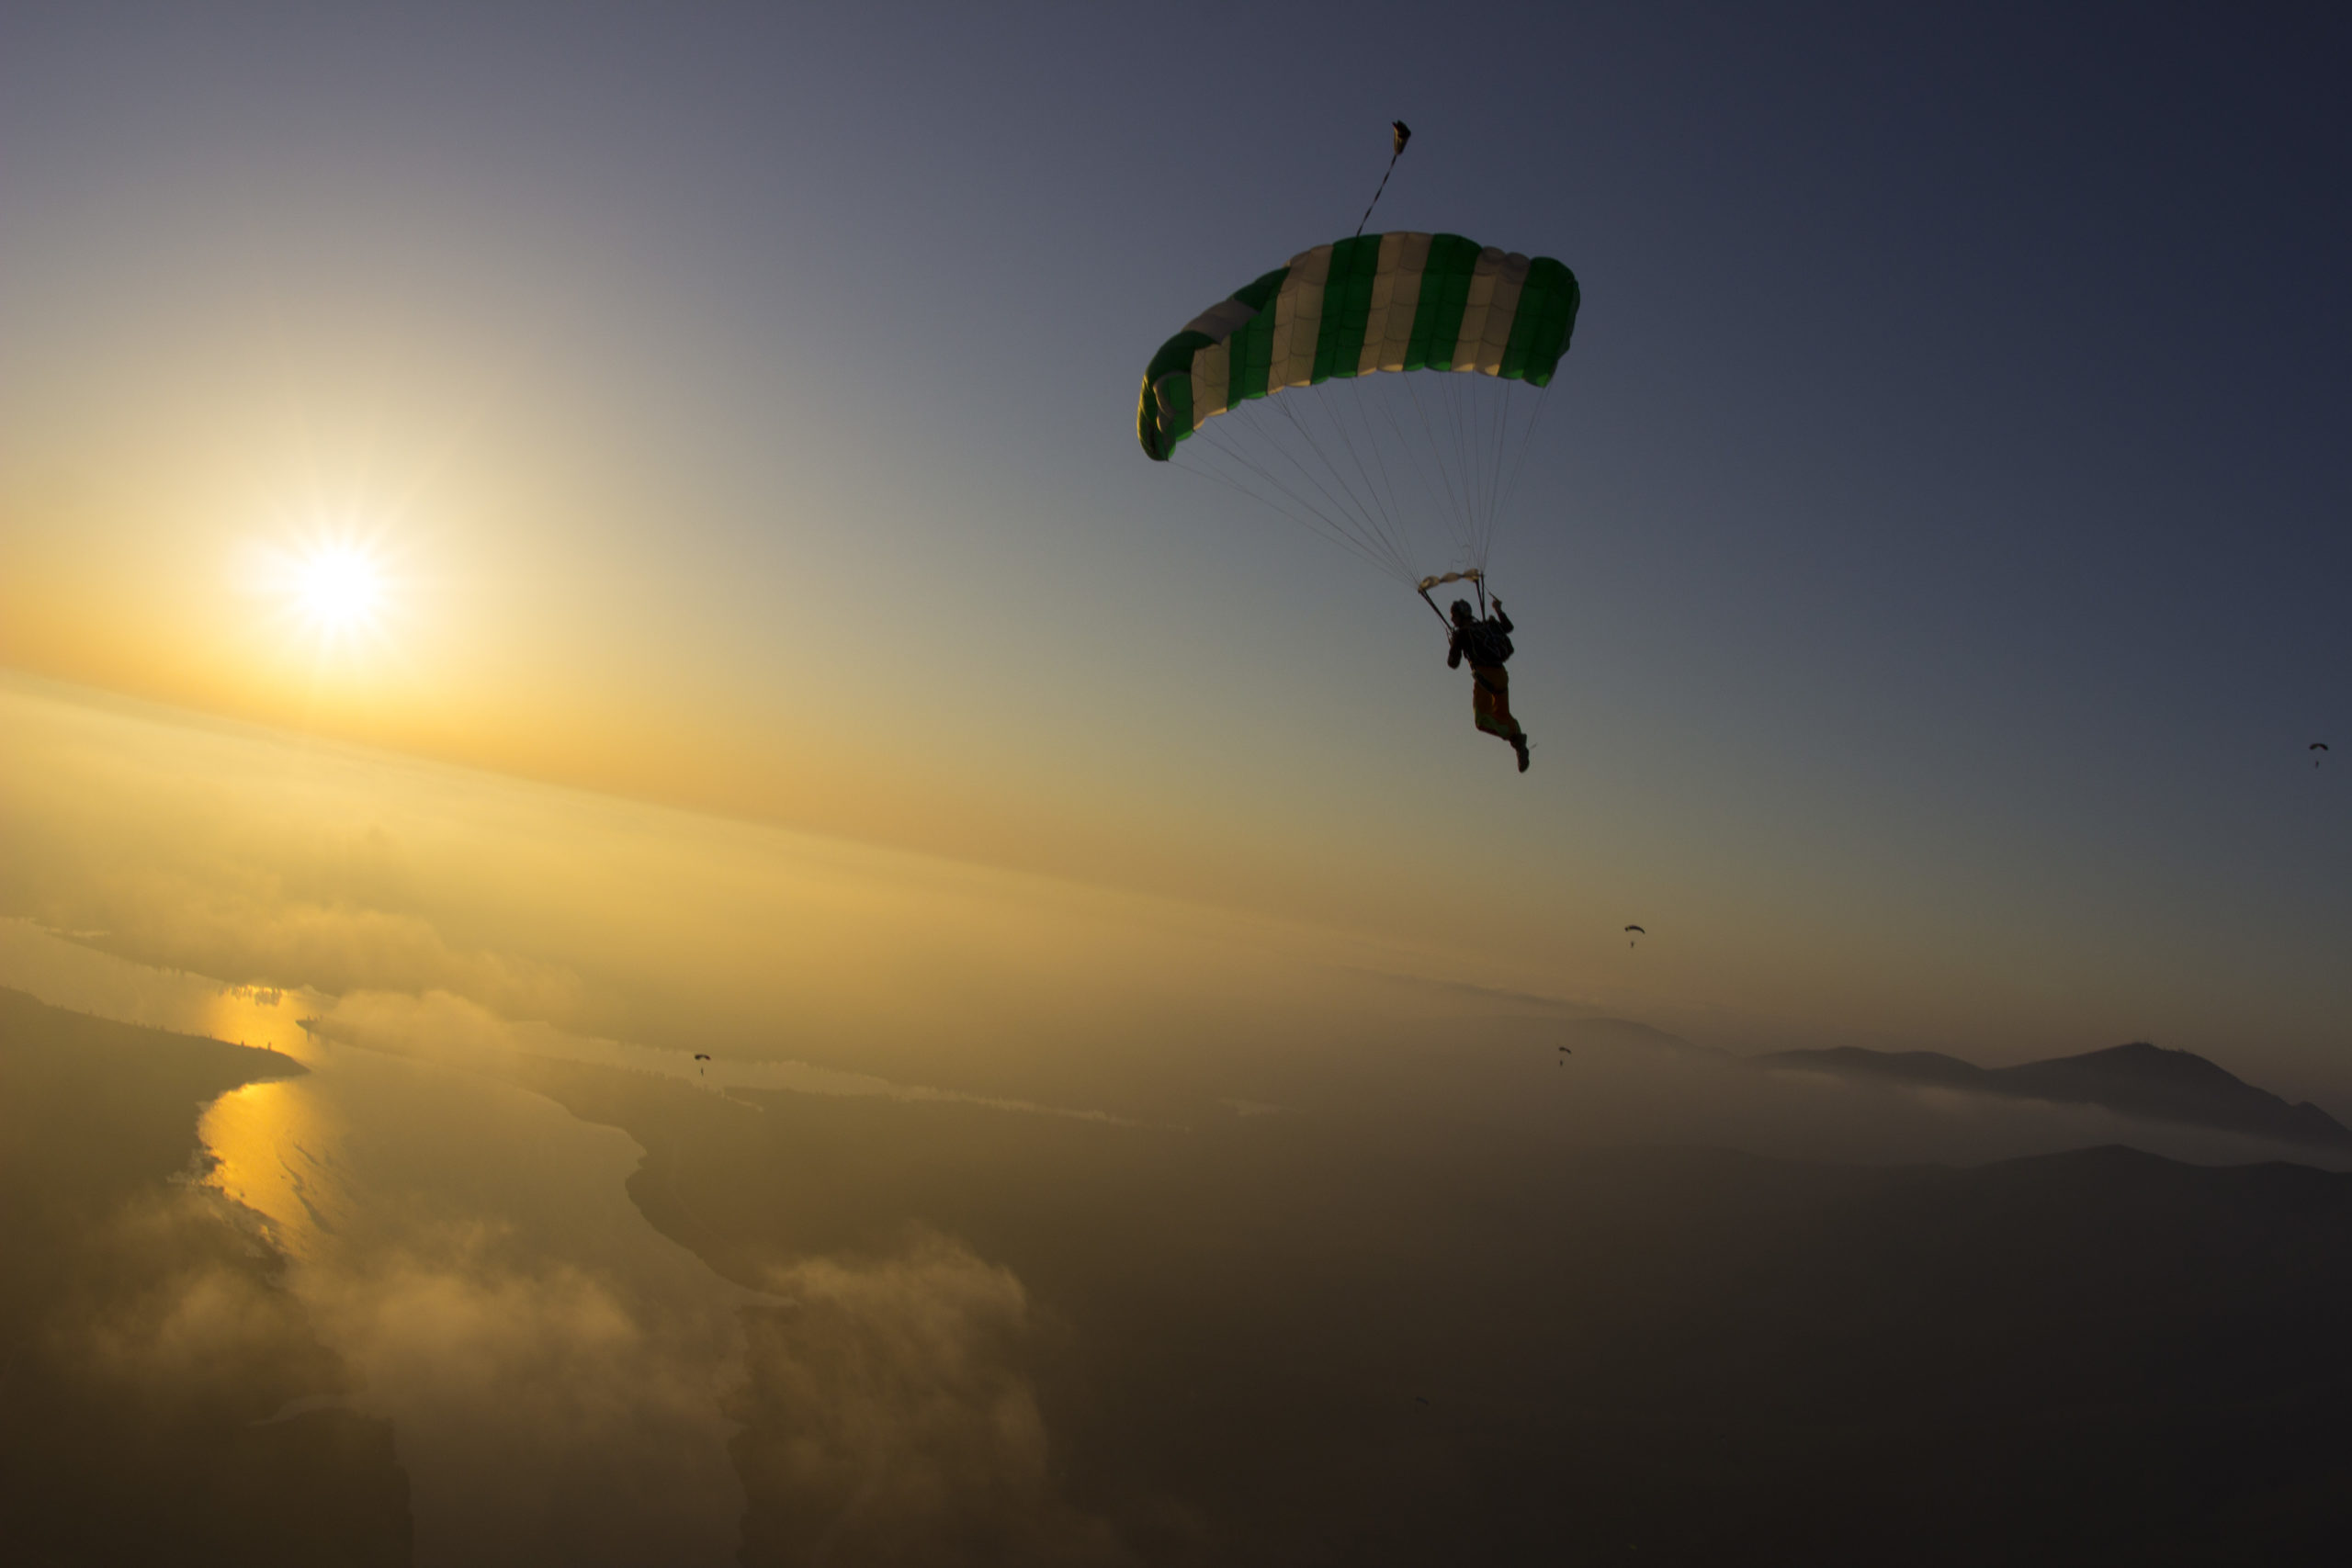 skydiving in sunset